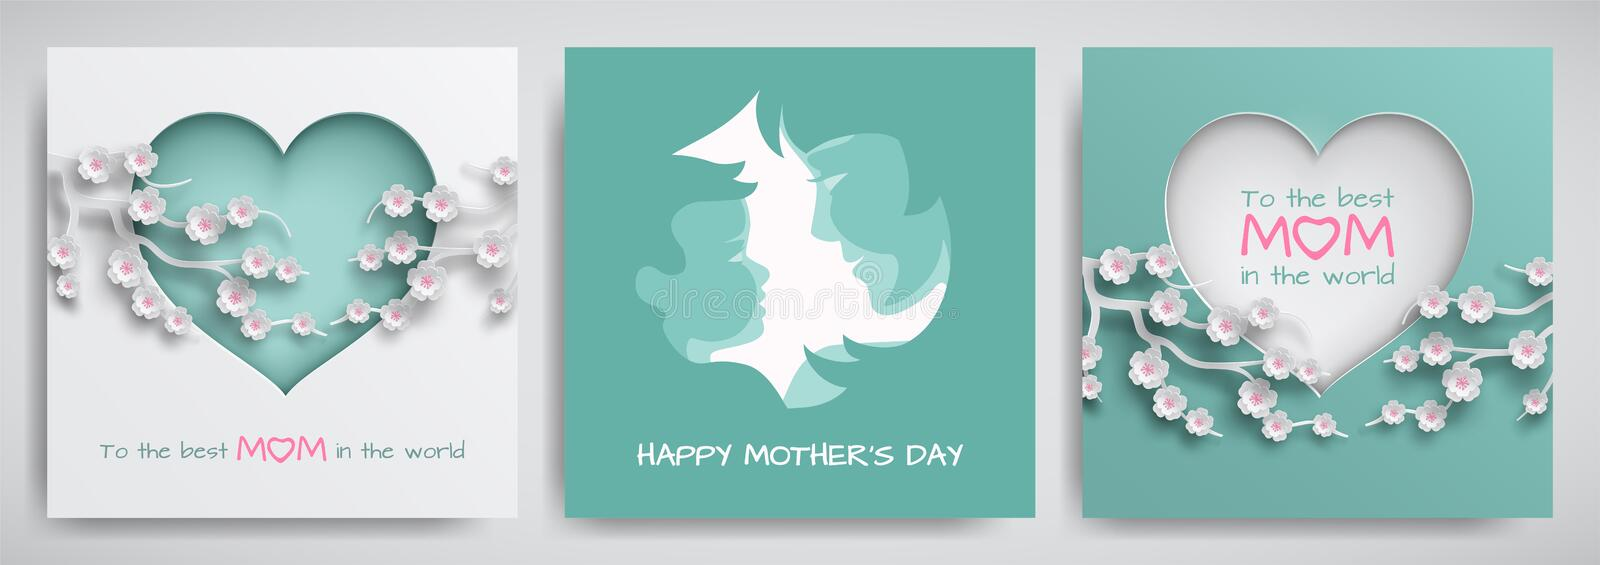 Set of green and pink greeting card for mother`s day. Women and baby silhouettes, сongratulations text, cuted heart with flowers vector illustration